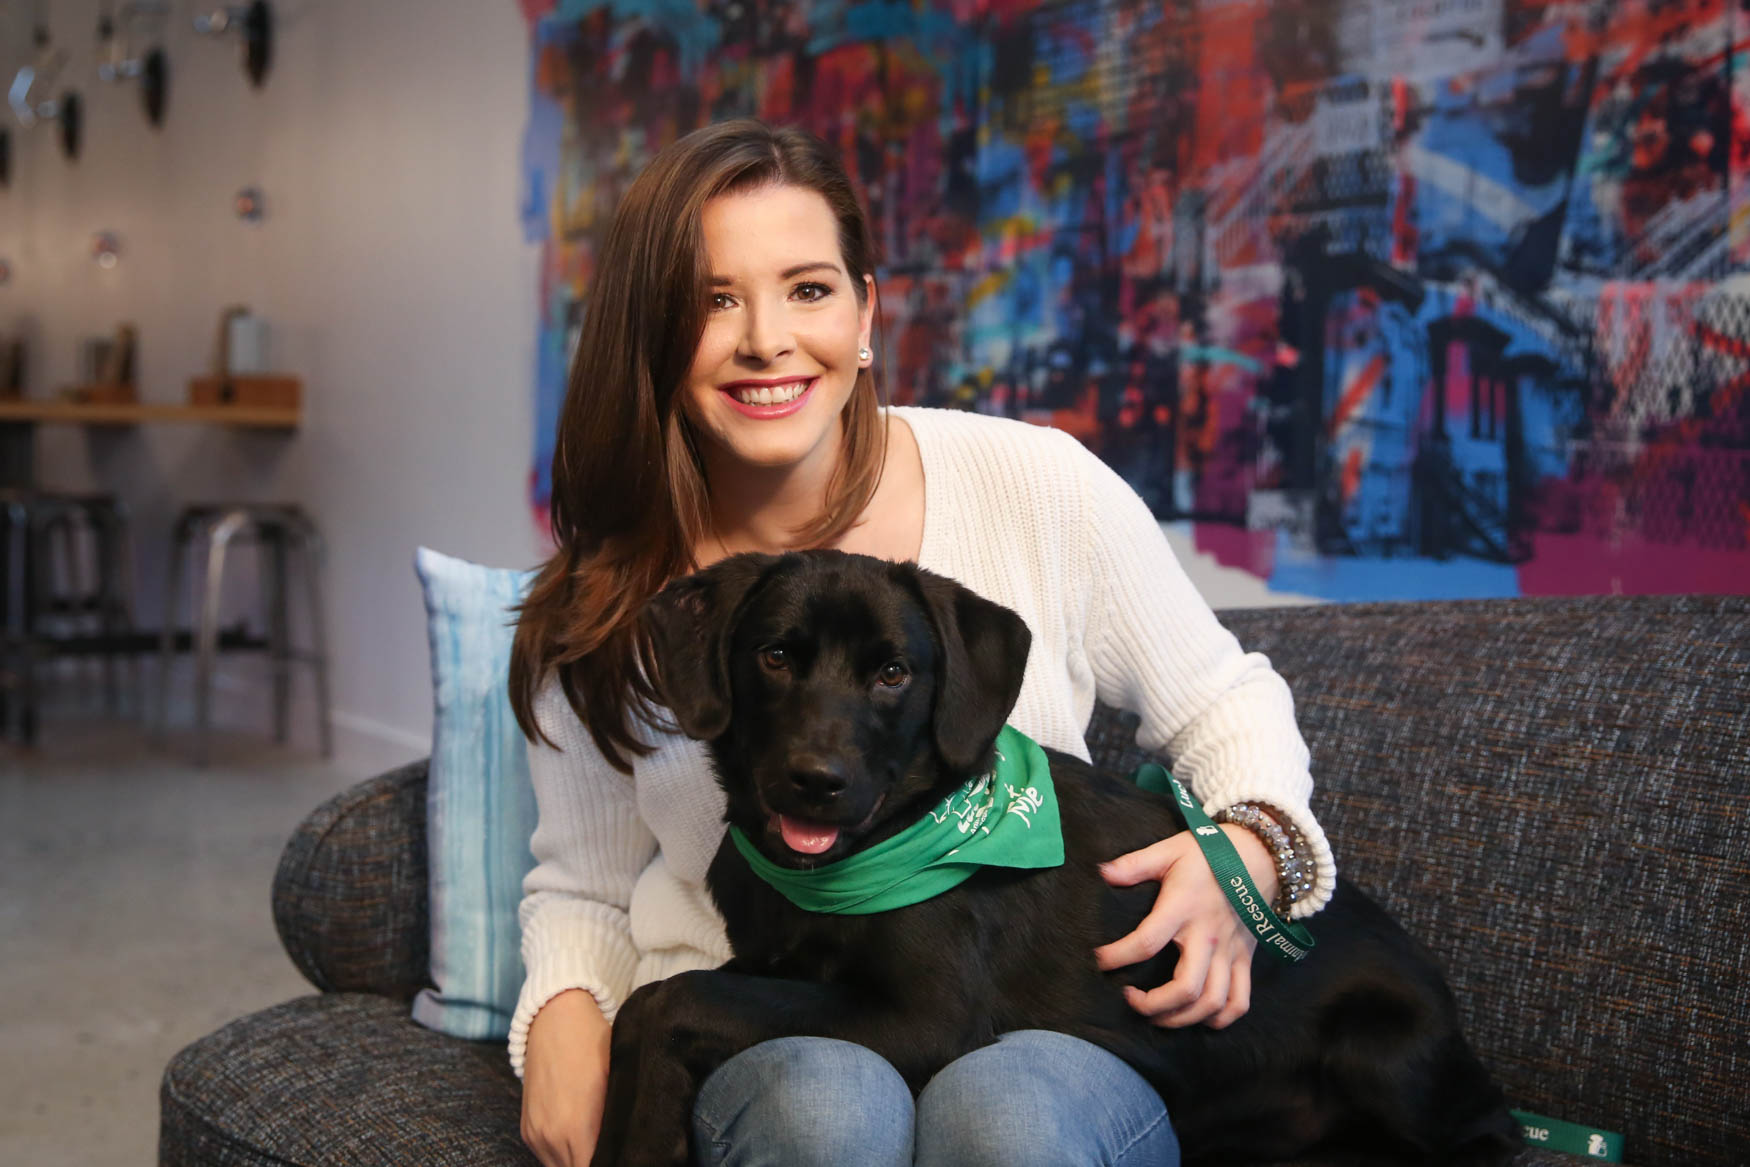 Justine is originally from Arlington, VA and currently works as a spokesperson. She enjoys piano, reading, casual hiking and daydreaming about having a huge yard for a pup some day! Learn more about Justine on our Facebook page. Photo location: Moxy Washington, D.C. Downtown (Image: Amanda Andrade-Rhoades/ DC Refined)